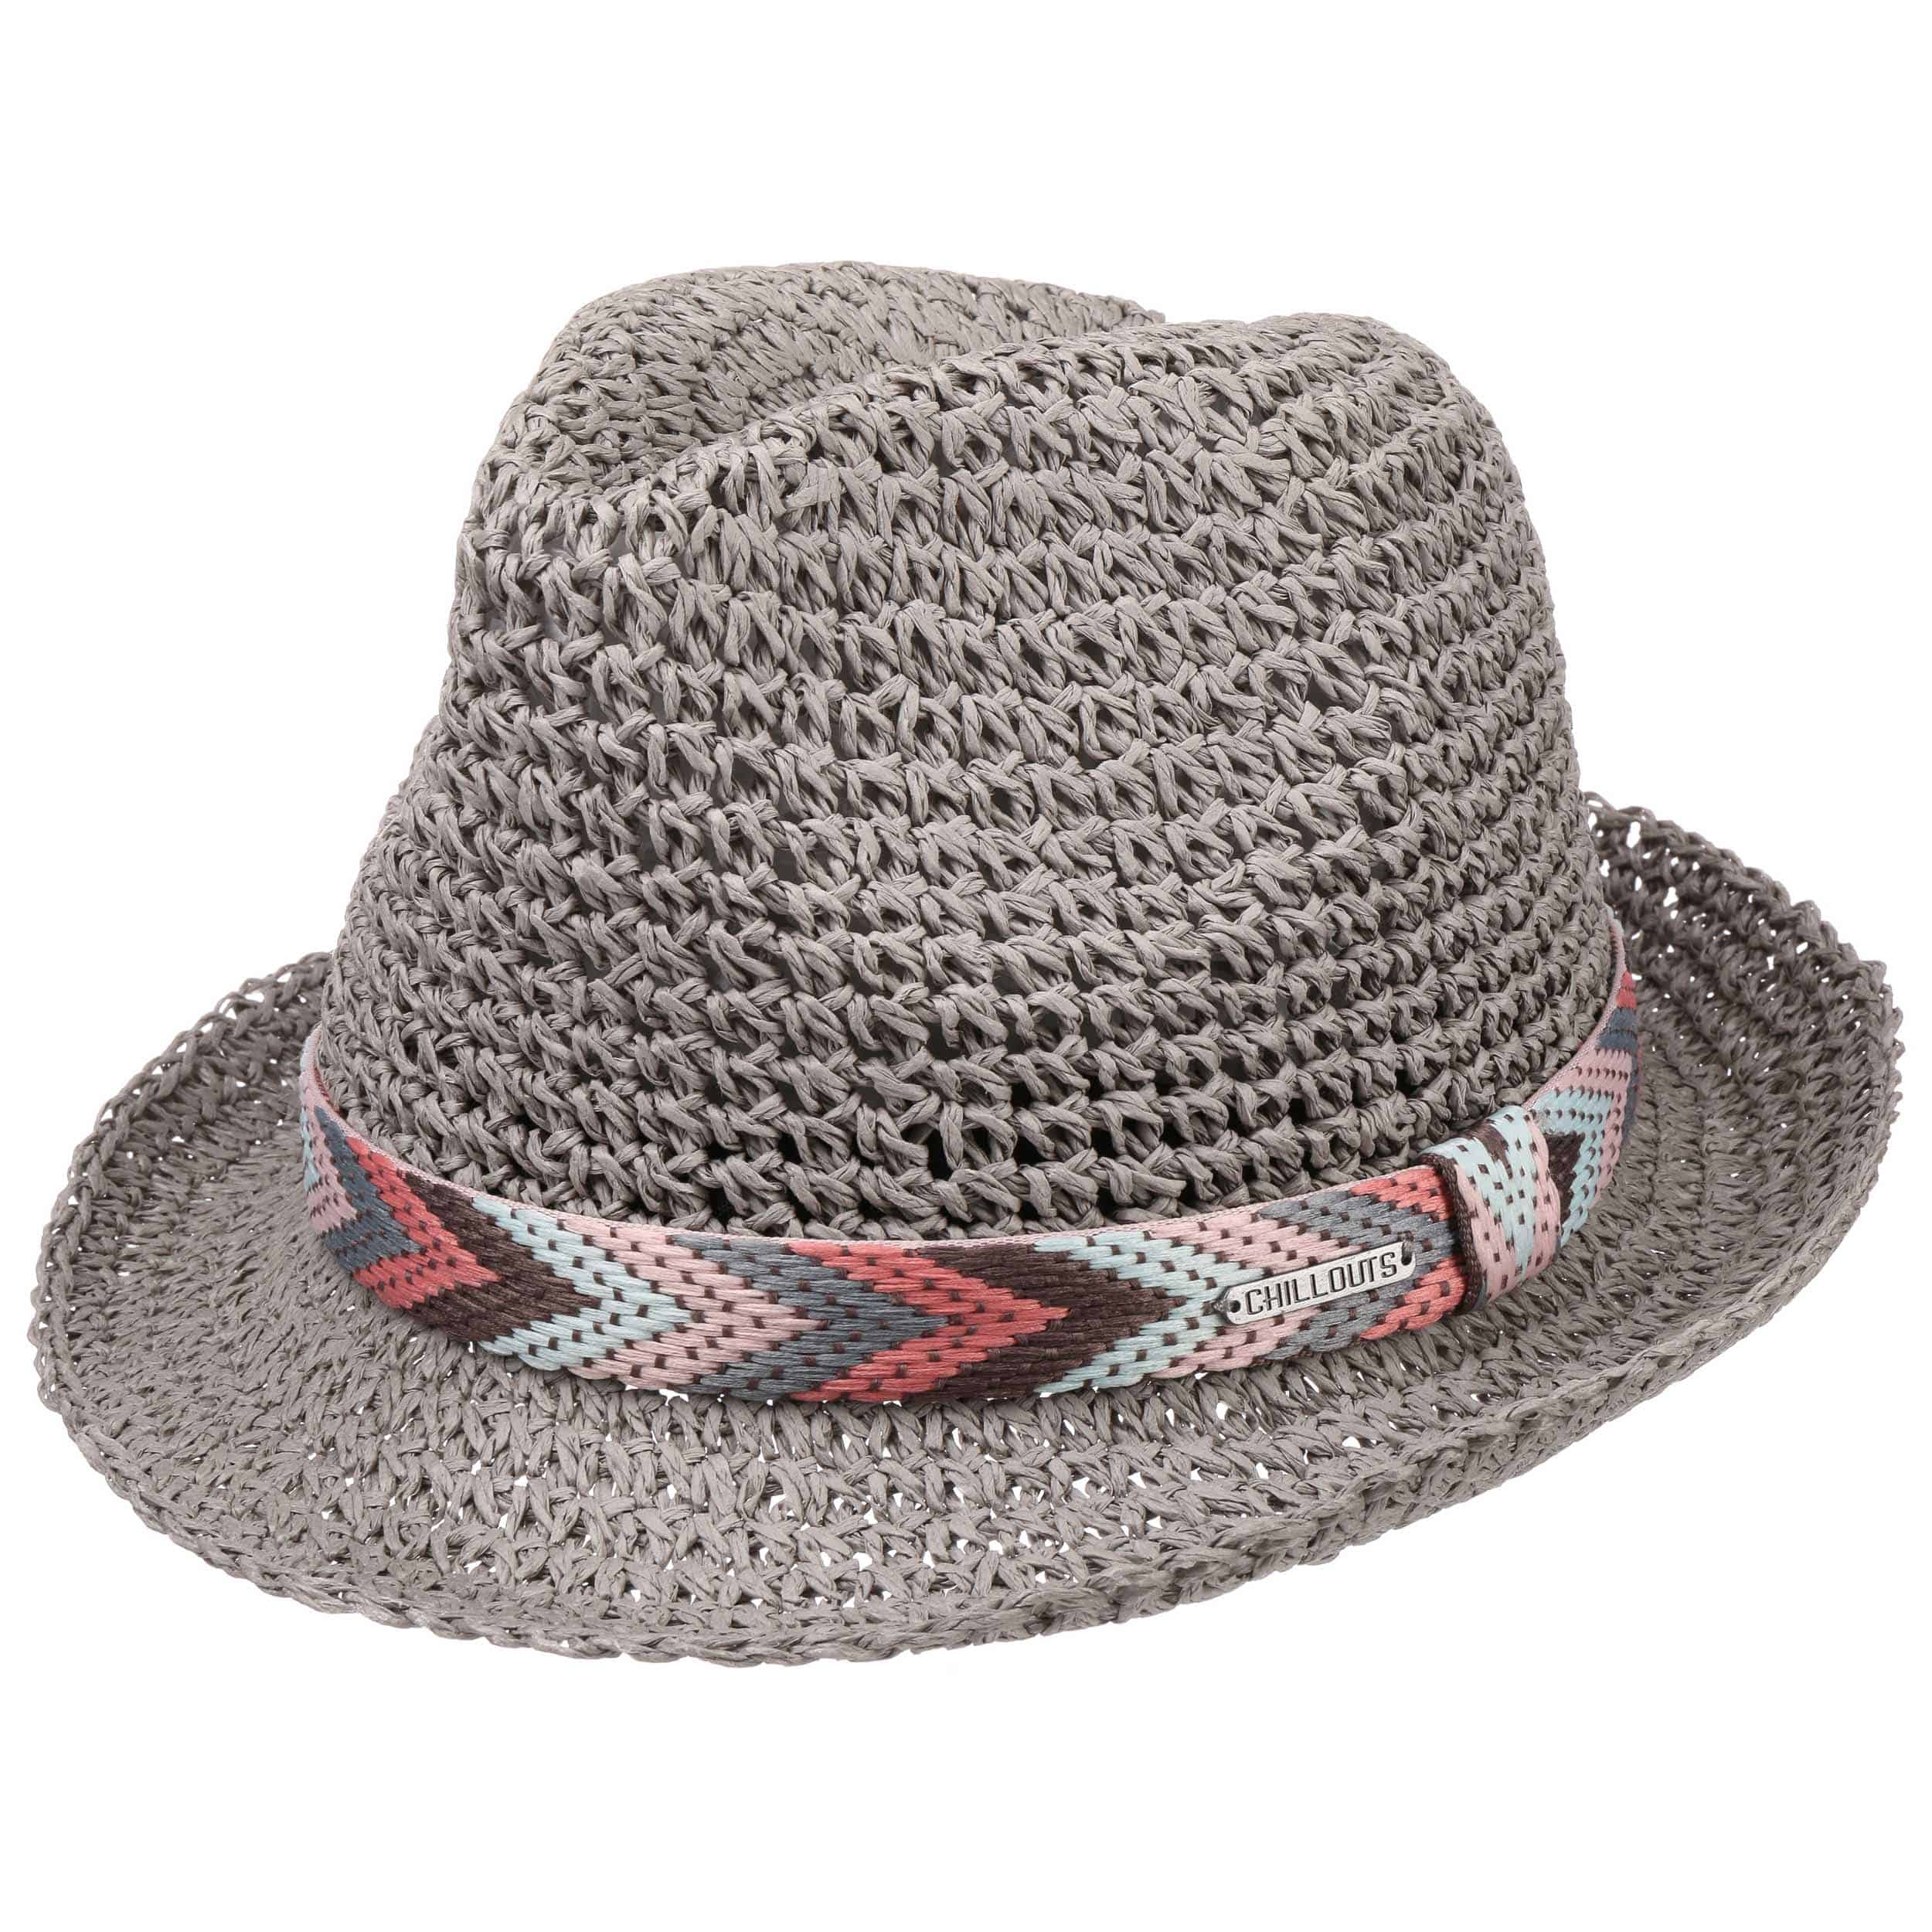 e72bb2ec8 Medellin Crushable Straw Hat by Chillouts